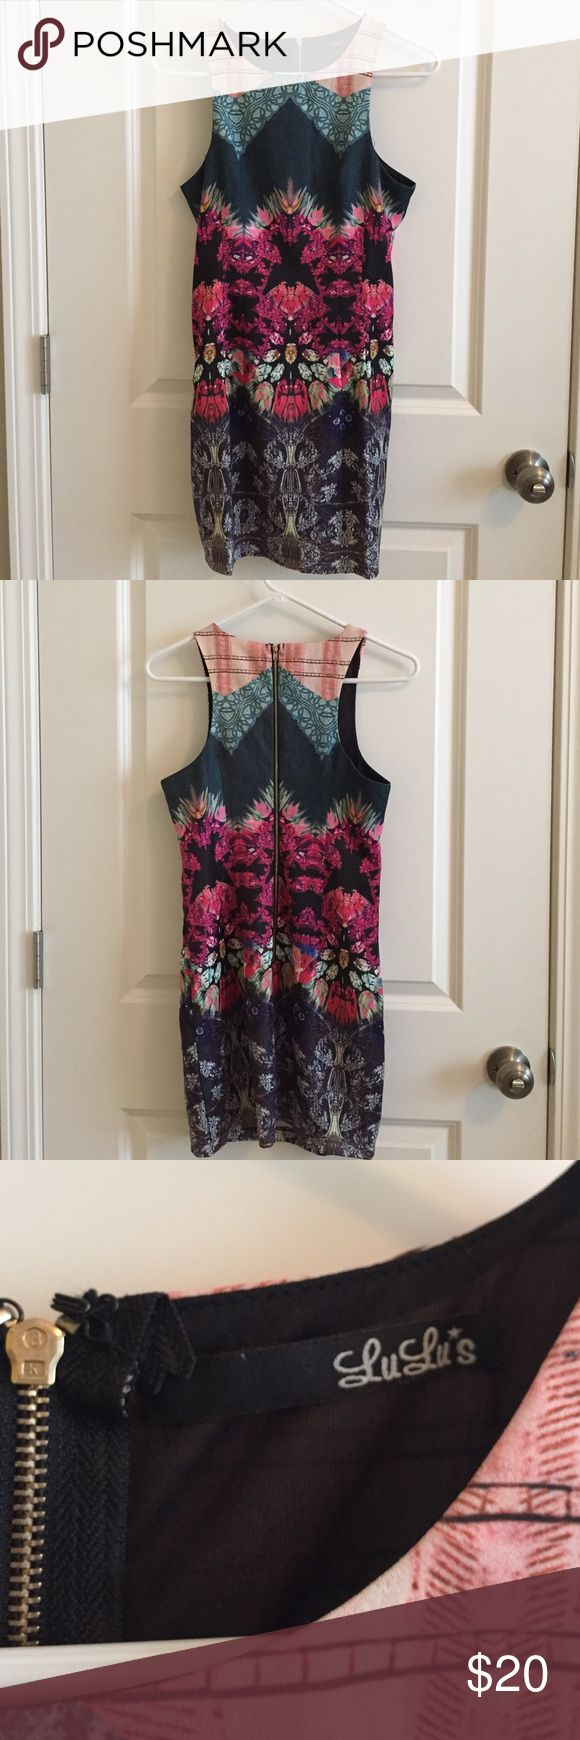 Lulu's multi color bodycon dress Fabulous going out dress! Multicolor and patterned body on dress from Lulu's. Lined dress with exposed zipper in back. Lulu's Dresses Mini